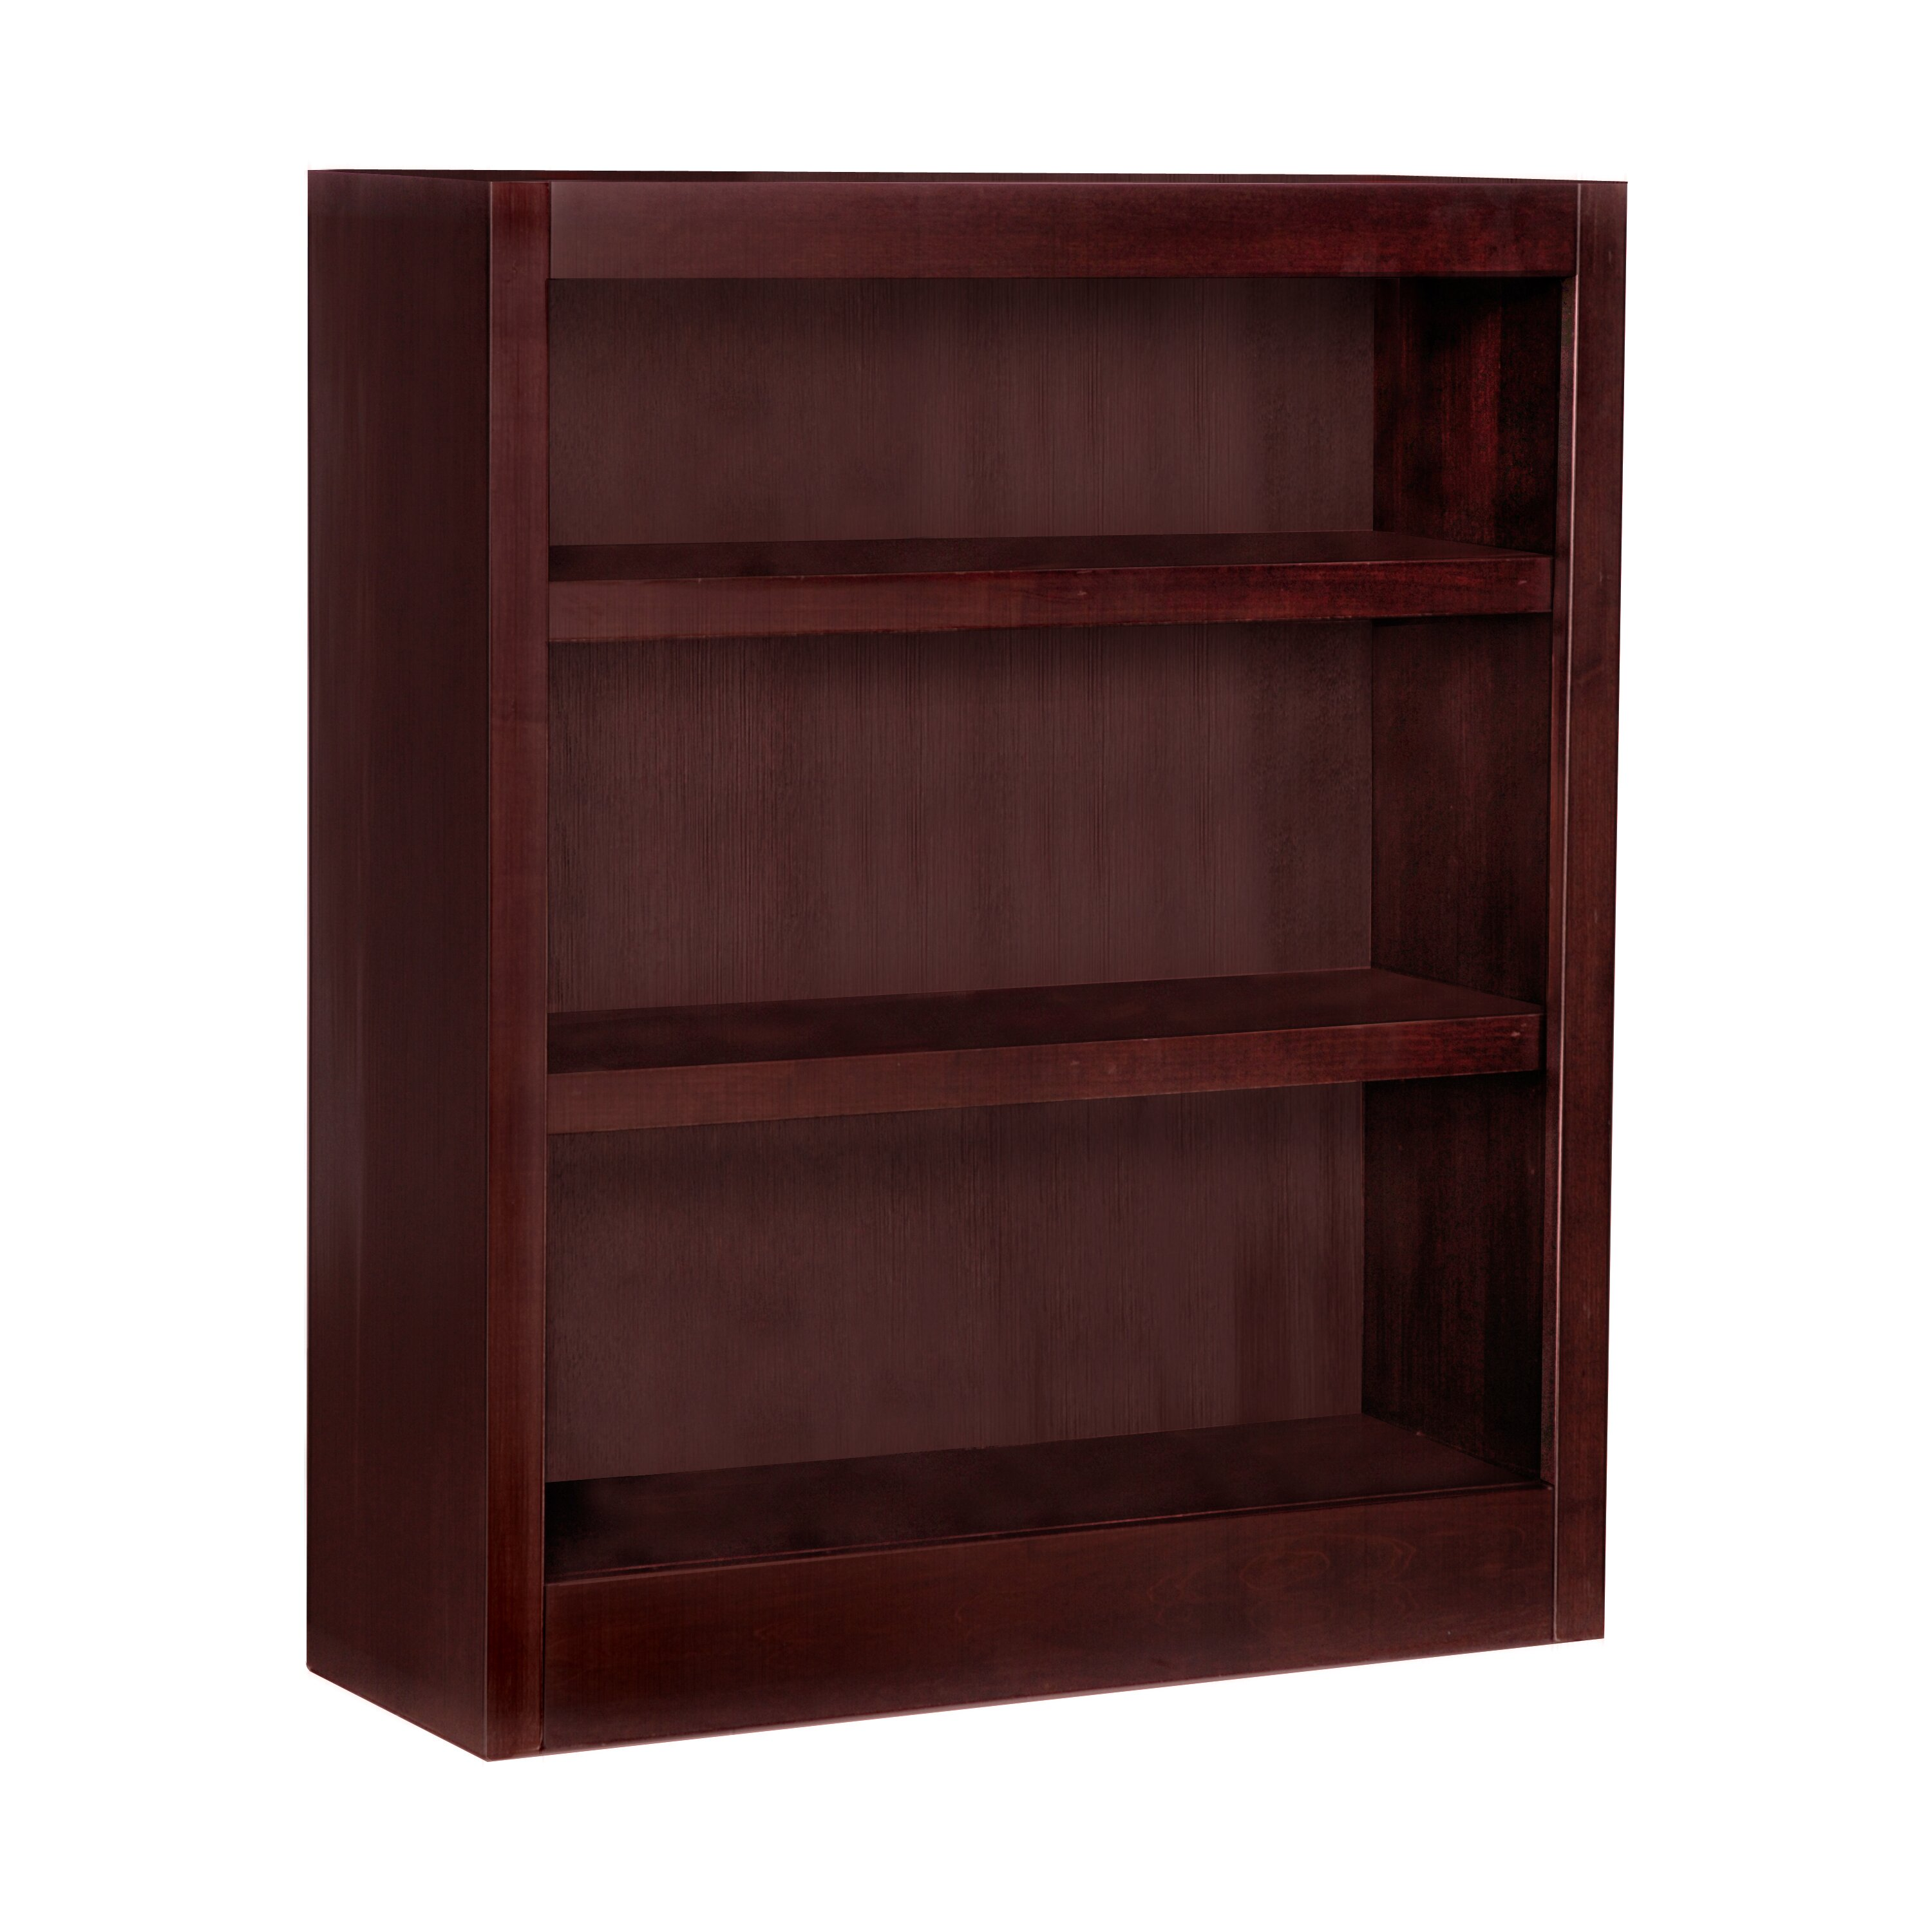 Concepts In Wood Single Wide 36 Standard Bookcase